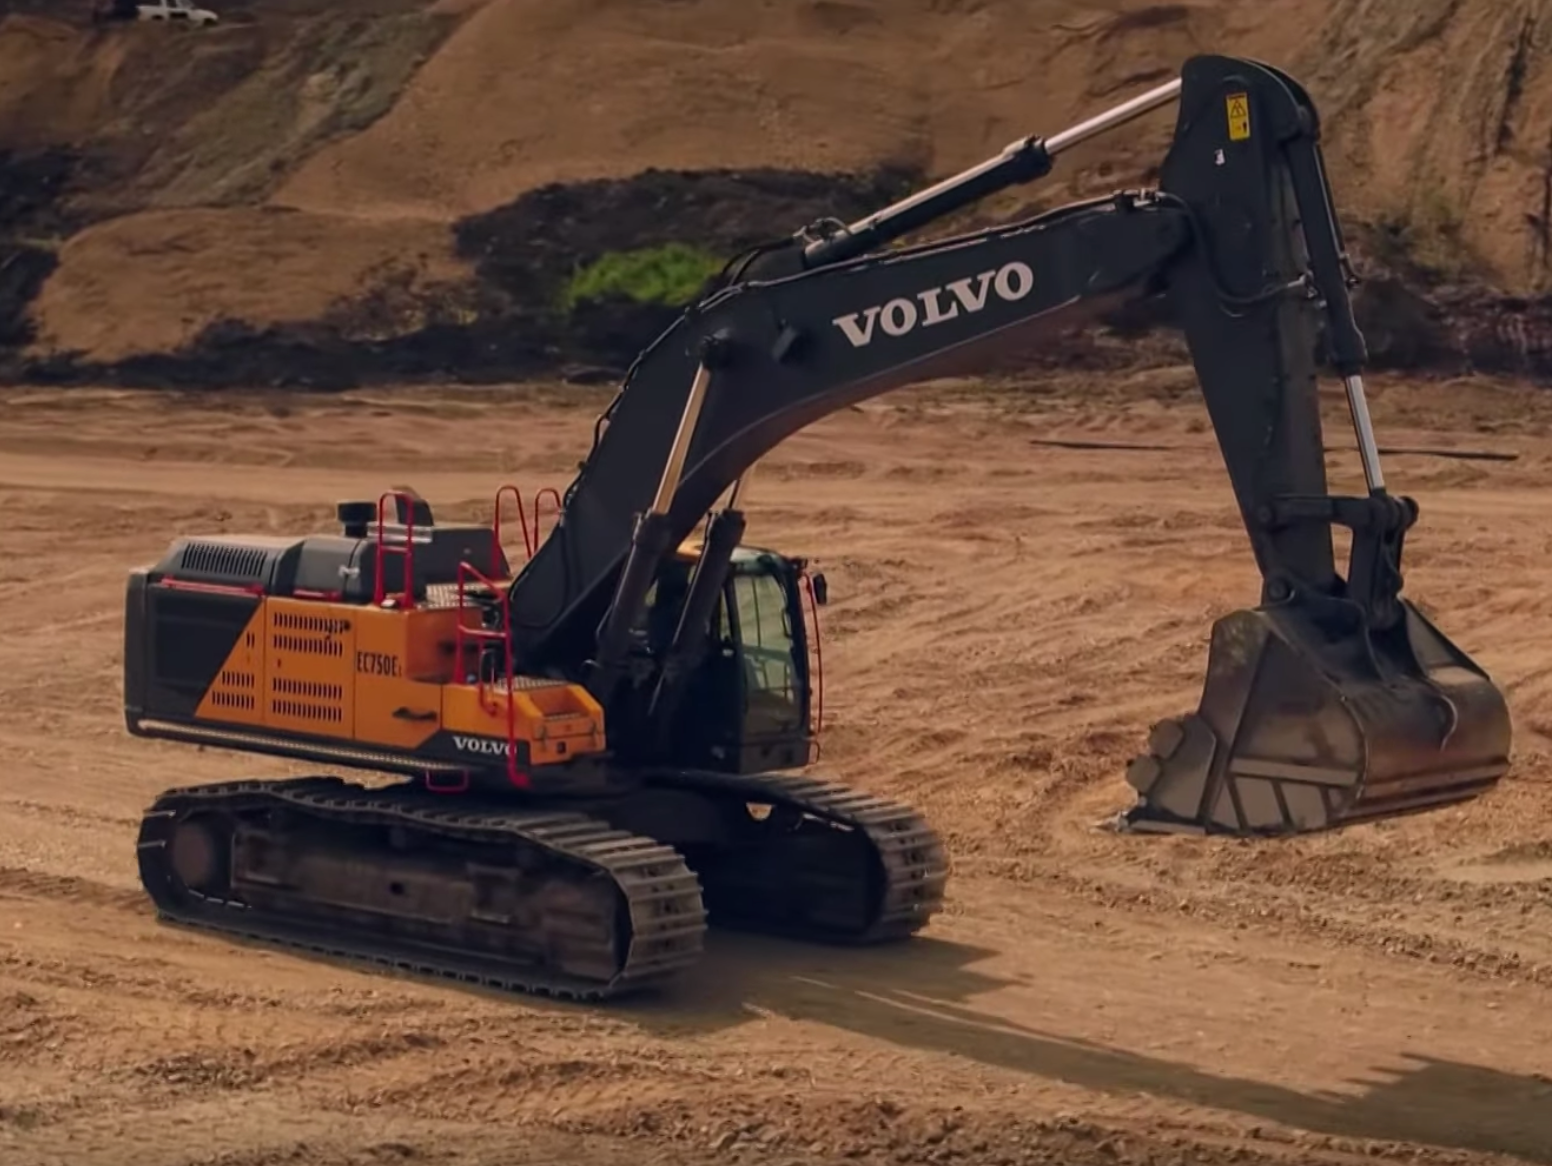 Gold Rush Parker Schnabel Brings In The Biggest Excavator You Ve Ever Seen